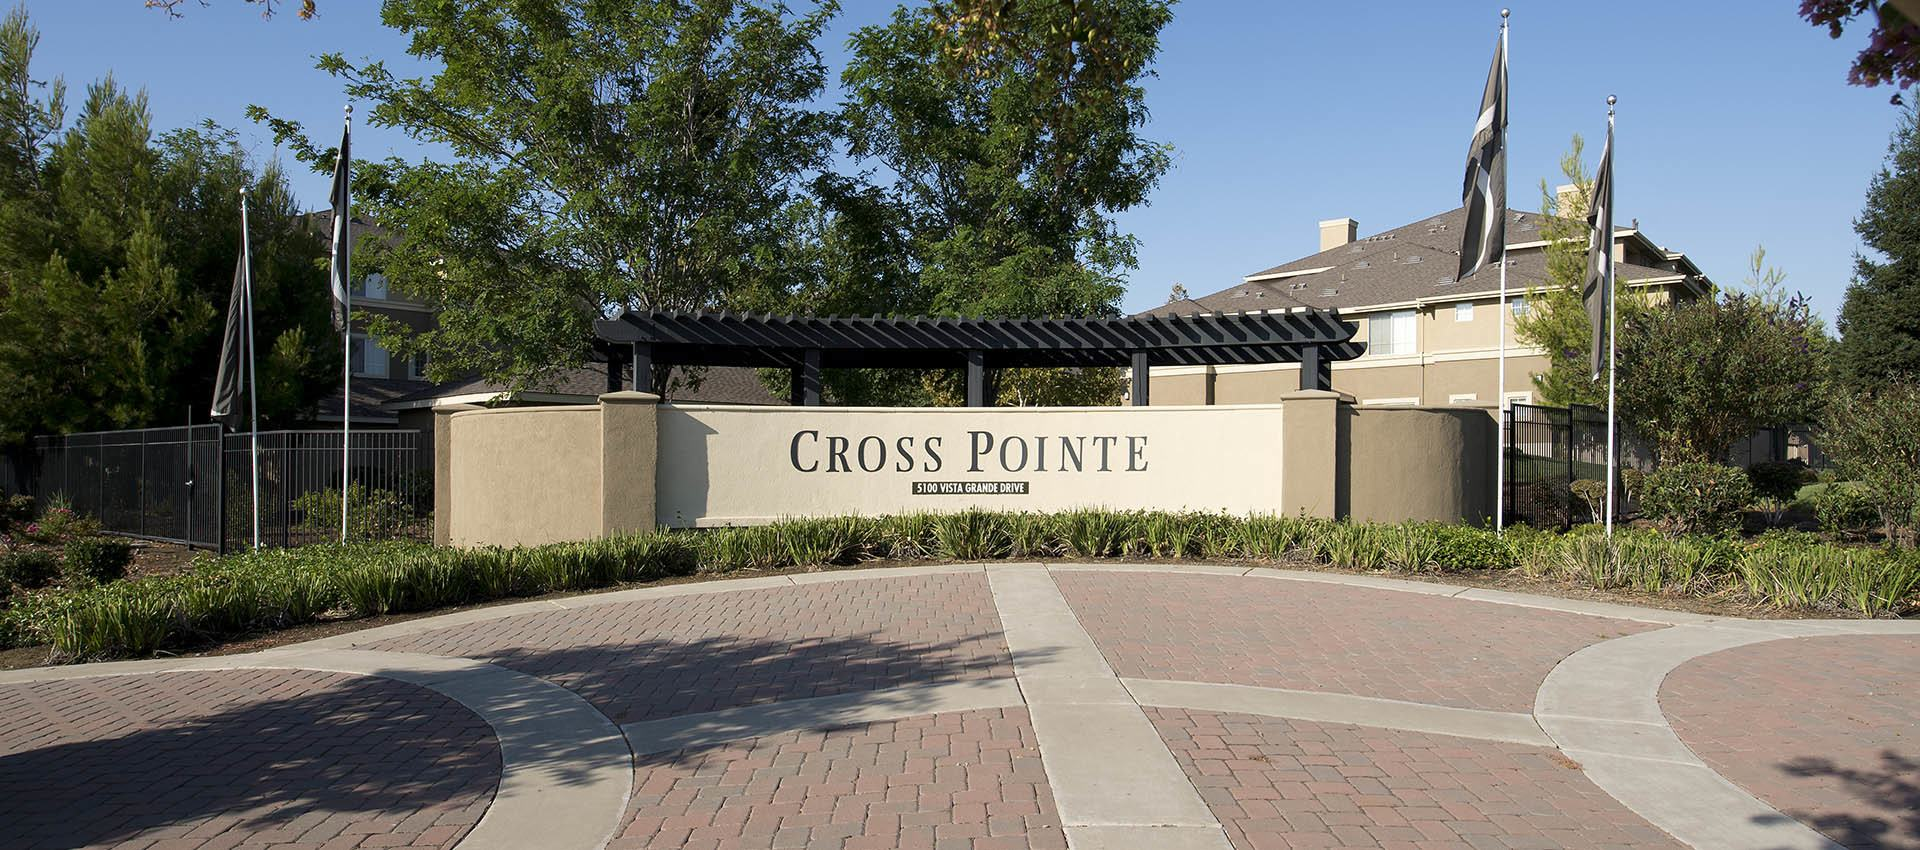 Signage at Cross Pointe Apartment Homes in Antioch